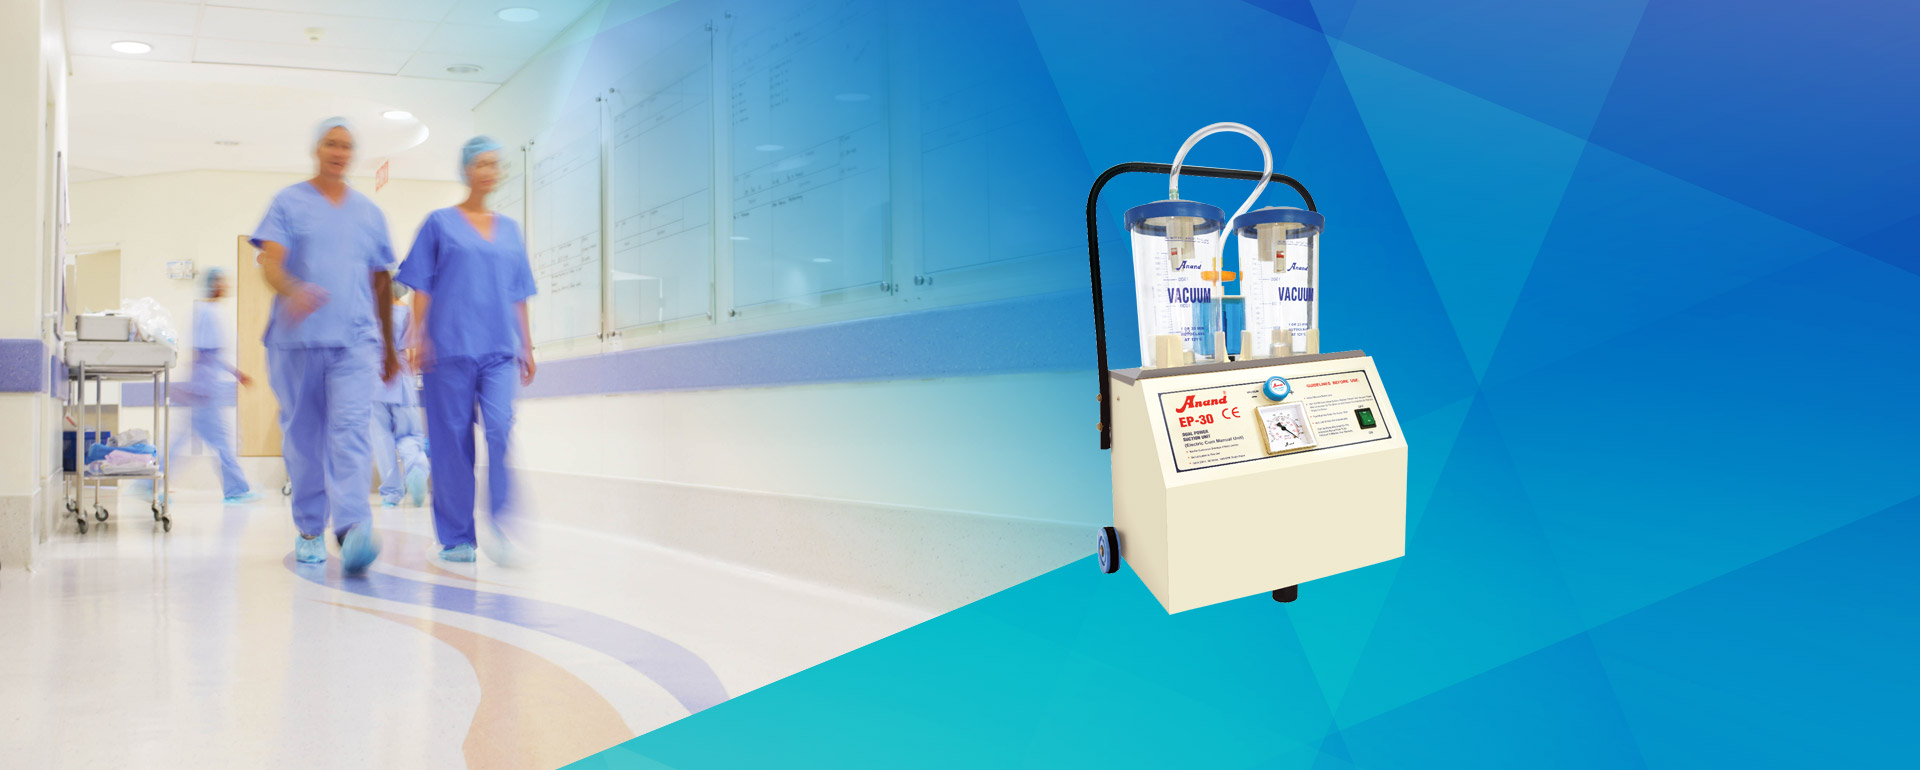 Electric Suction Banner